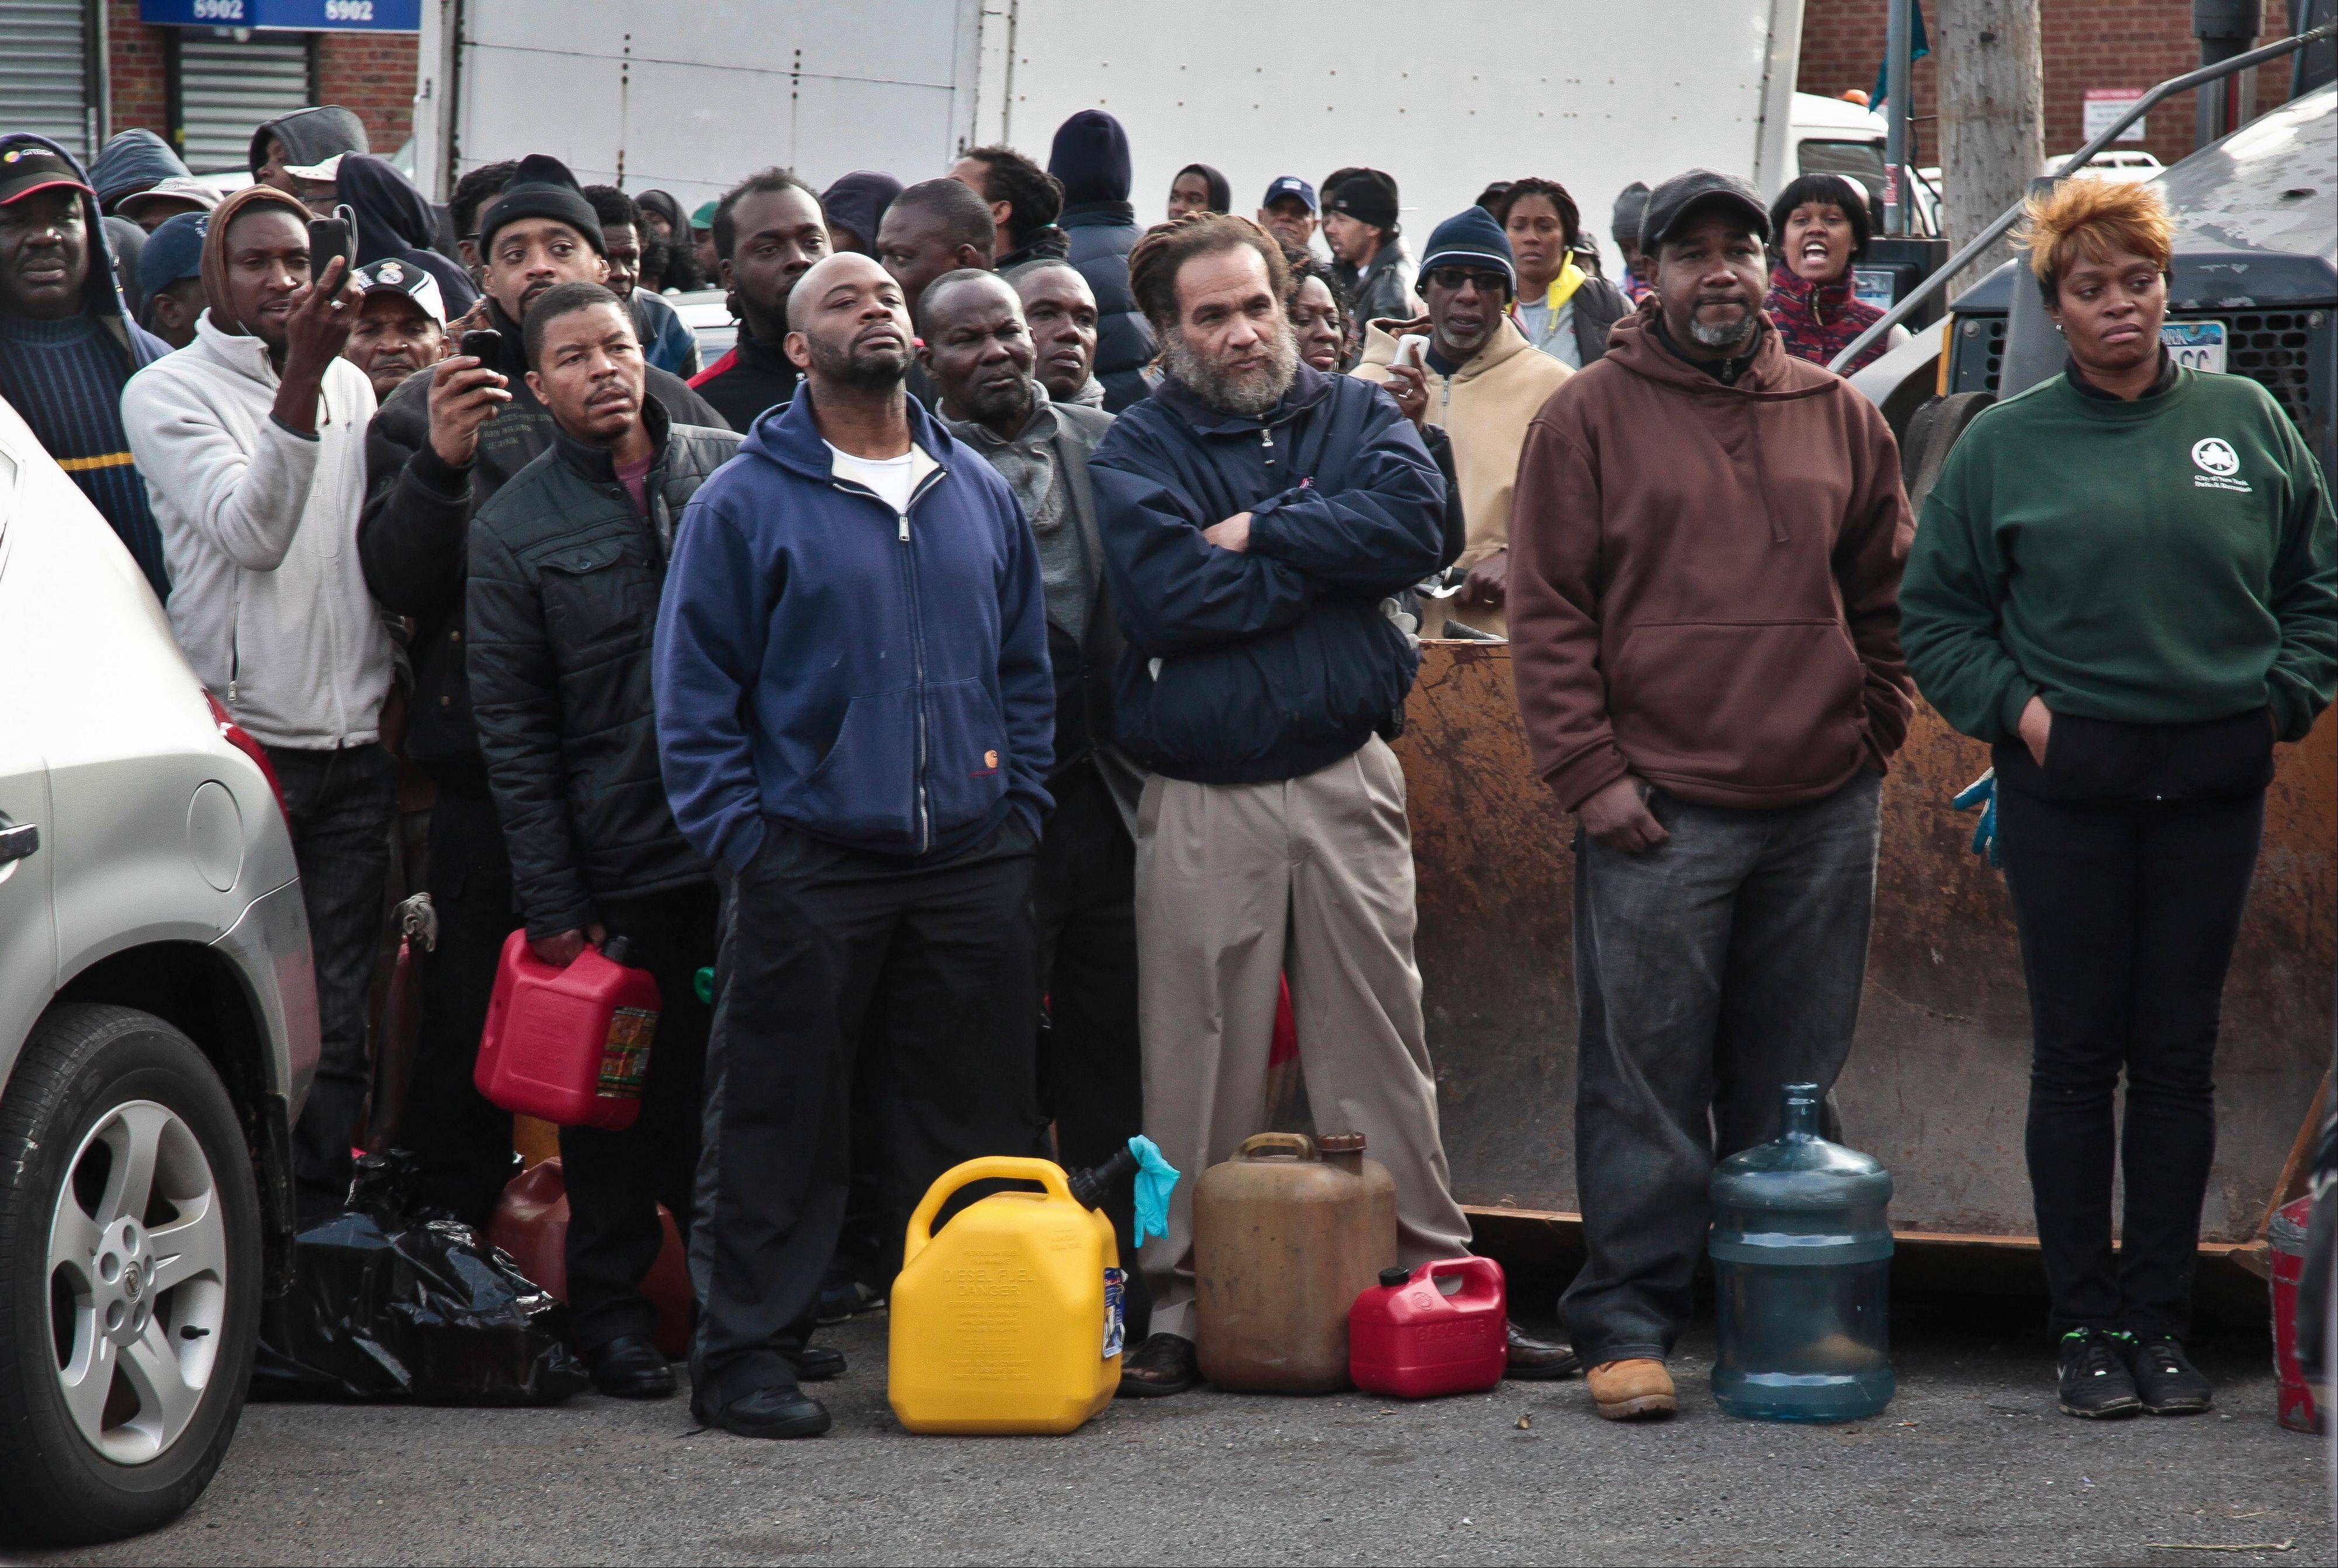 A crowd gather at a service station with portable containers, waiting for gas pumps to open, Saturday in the Brooklyn borough of New York. Mayor Michael Bloomberg said that resolving gas shortages could take days. Police presence was increased at gas lines after arrests happened at gas stations over line jumping.